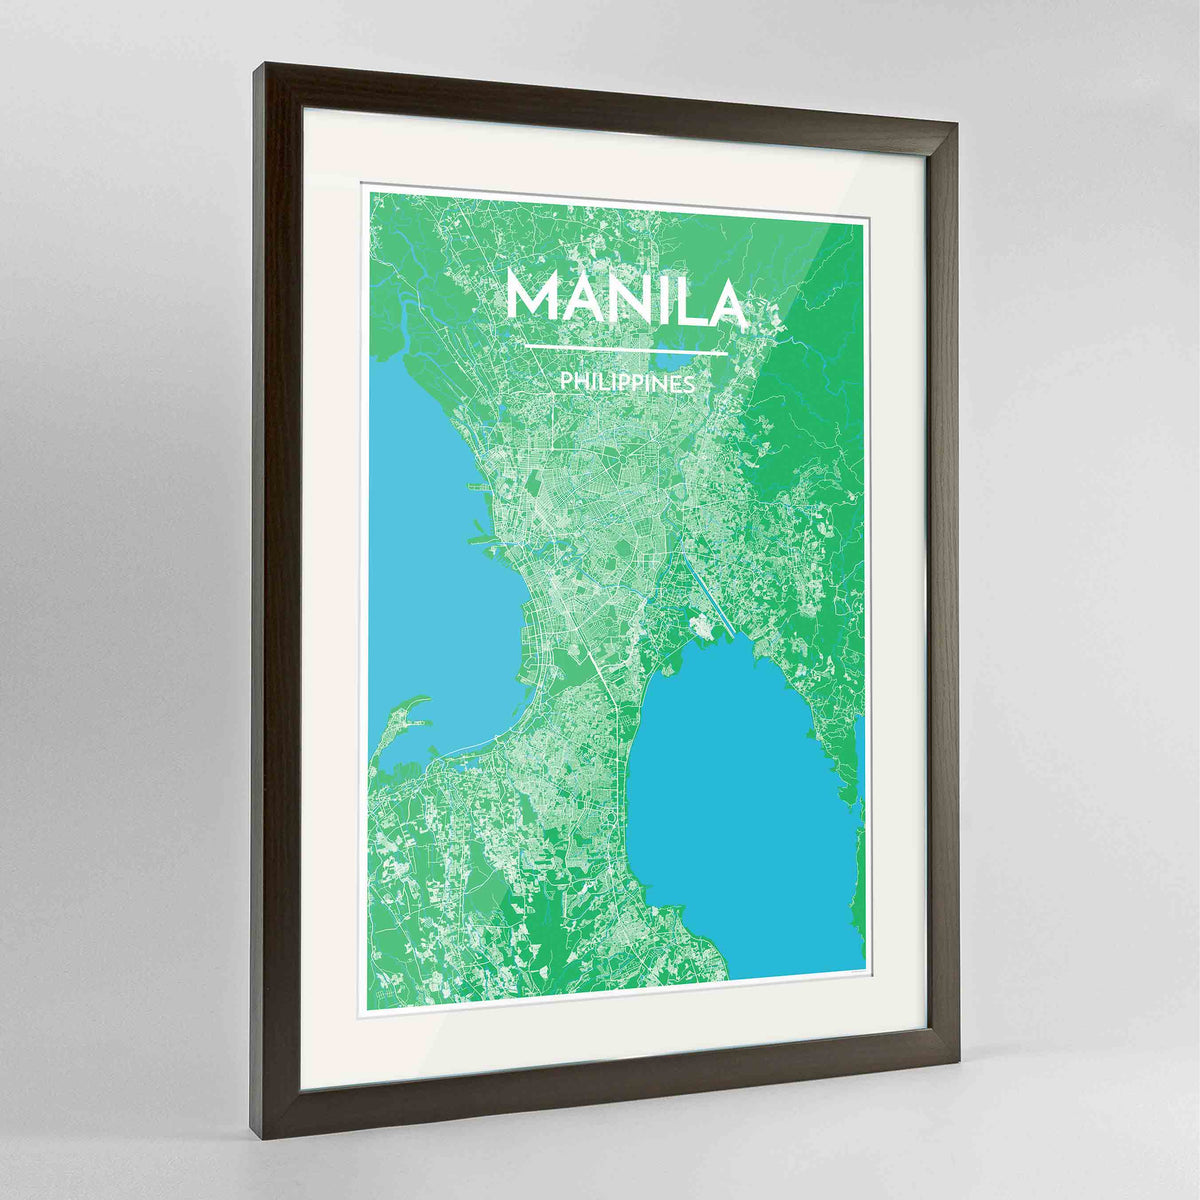 "Framed Manila Map Art Print 24x36"" Contemporary Walnut frame Point Two Design Group"